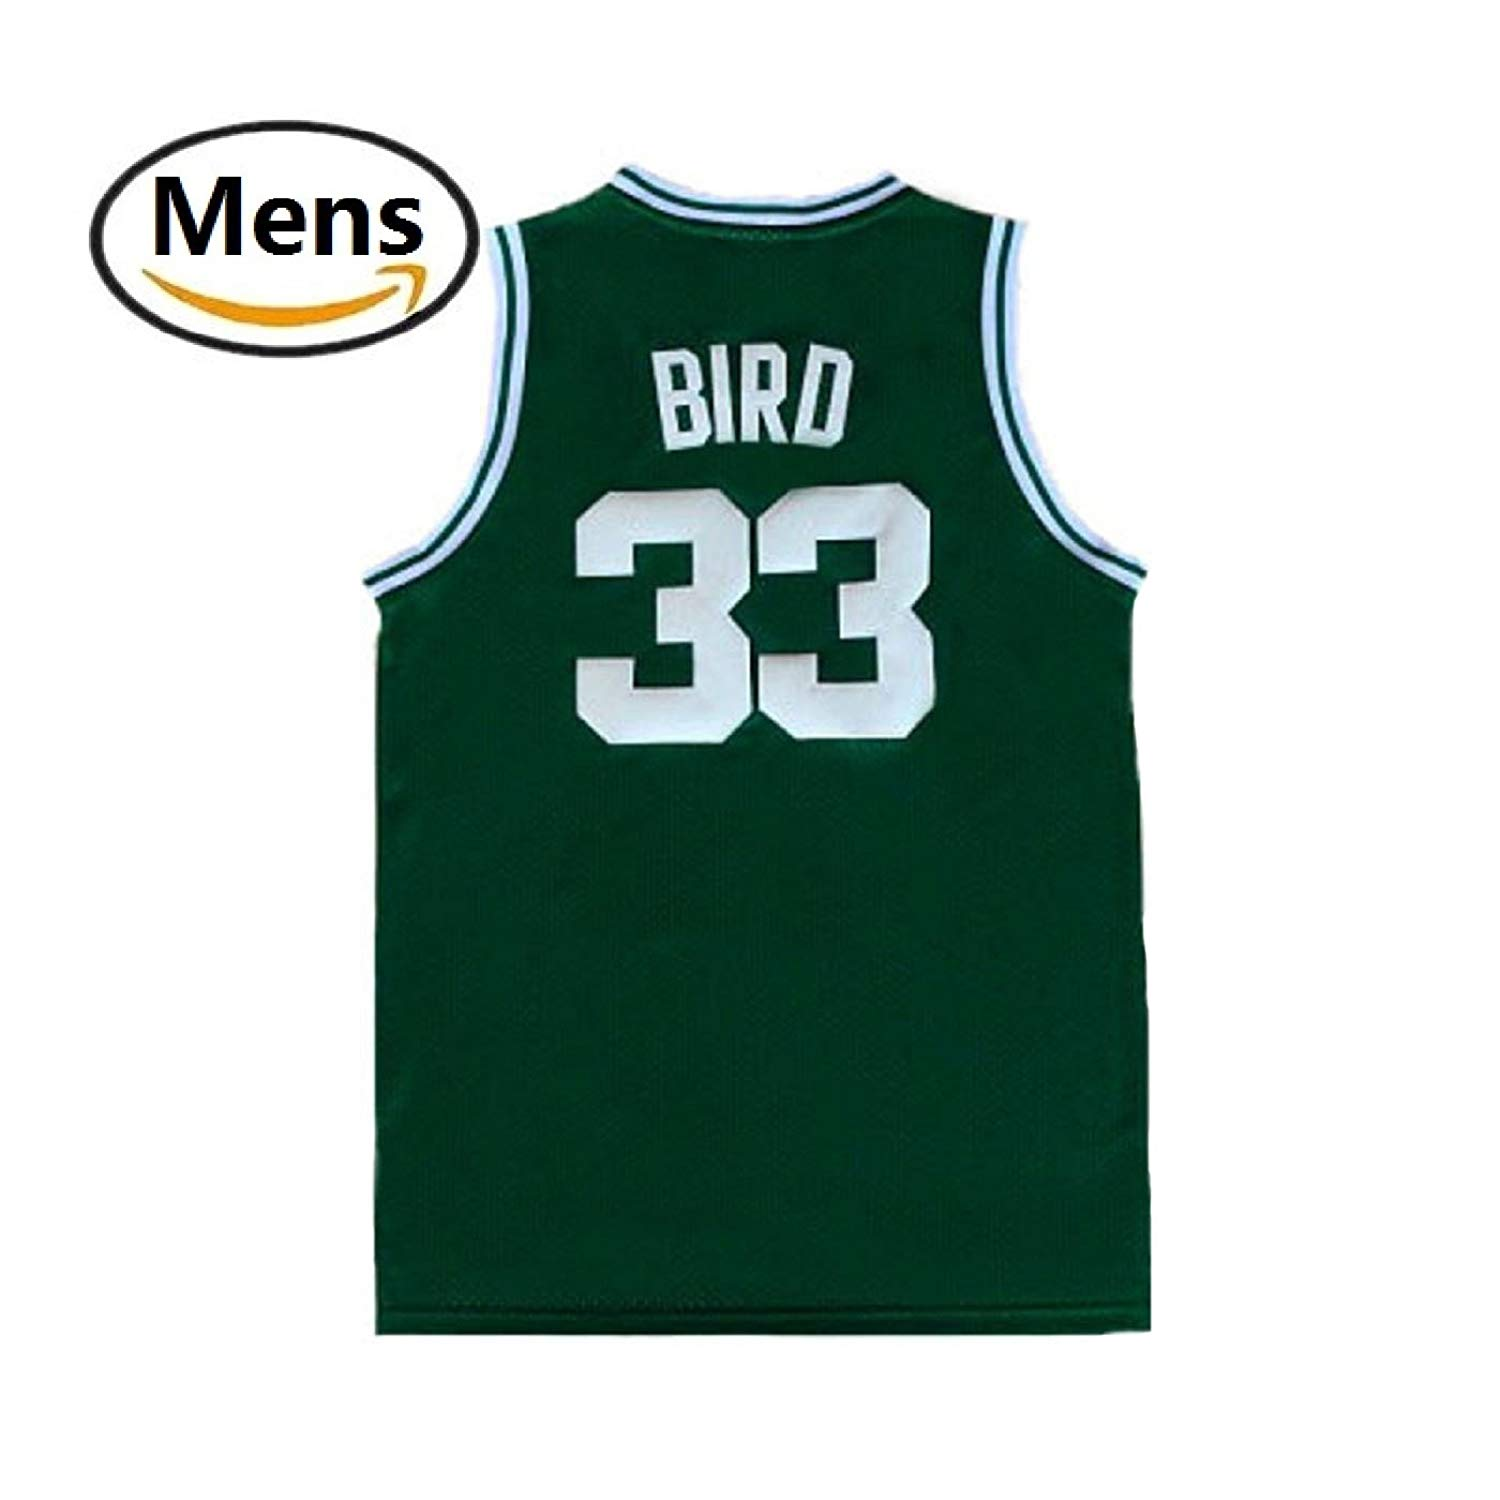 9d7e8710011 Get Quotations · maodege Men s Larry Jerseys Boston 33 Basketball Jersey  Bird Jerseys Green